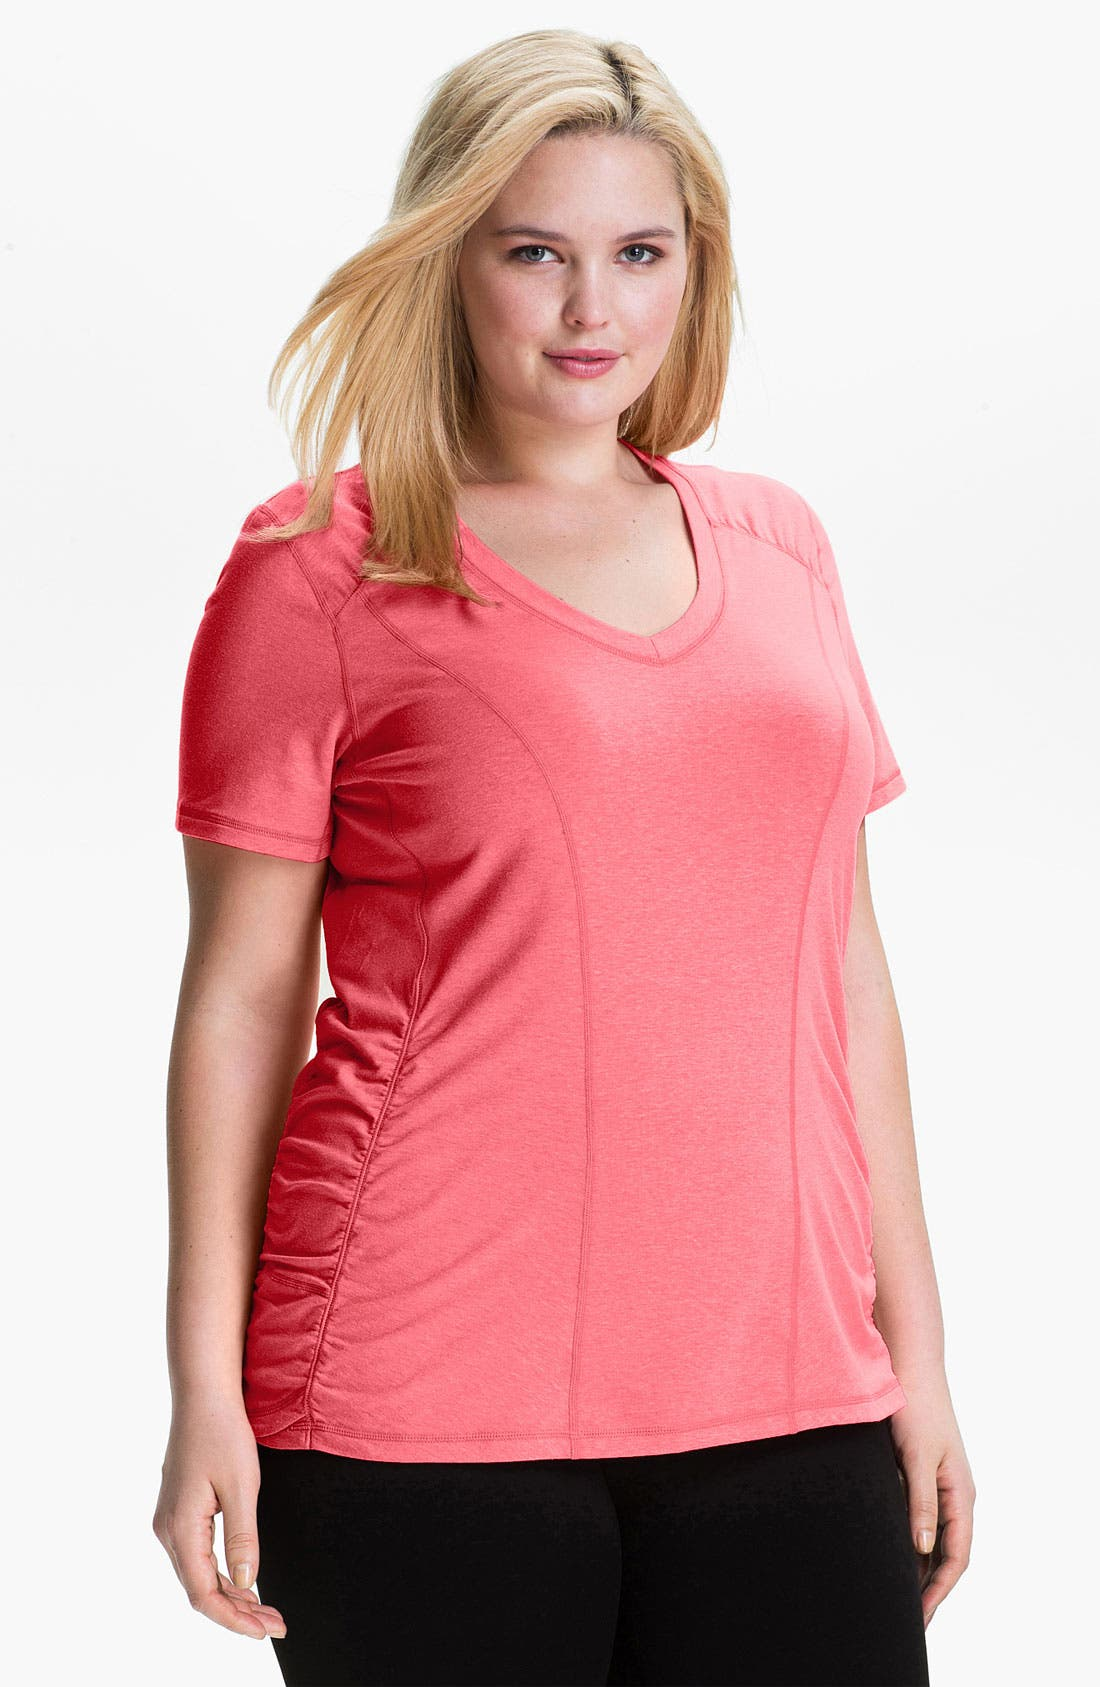 Alternate Image 1 Selected - Zella 'Z 4' Tee (Plus Size)